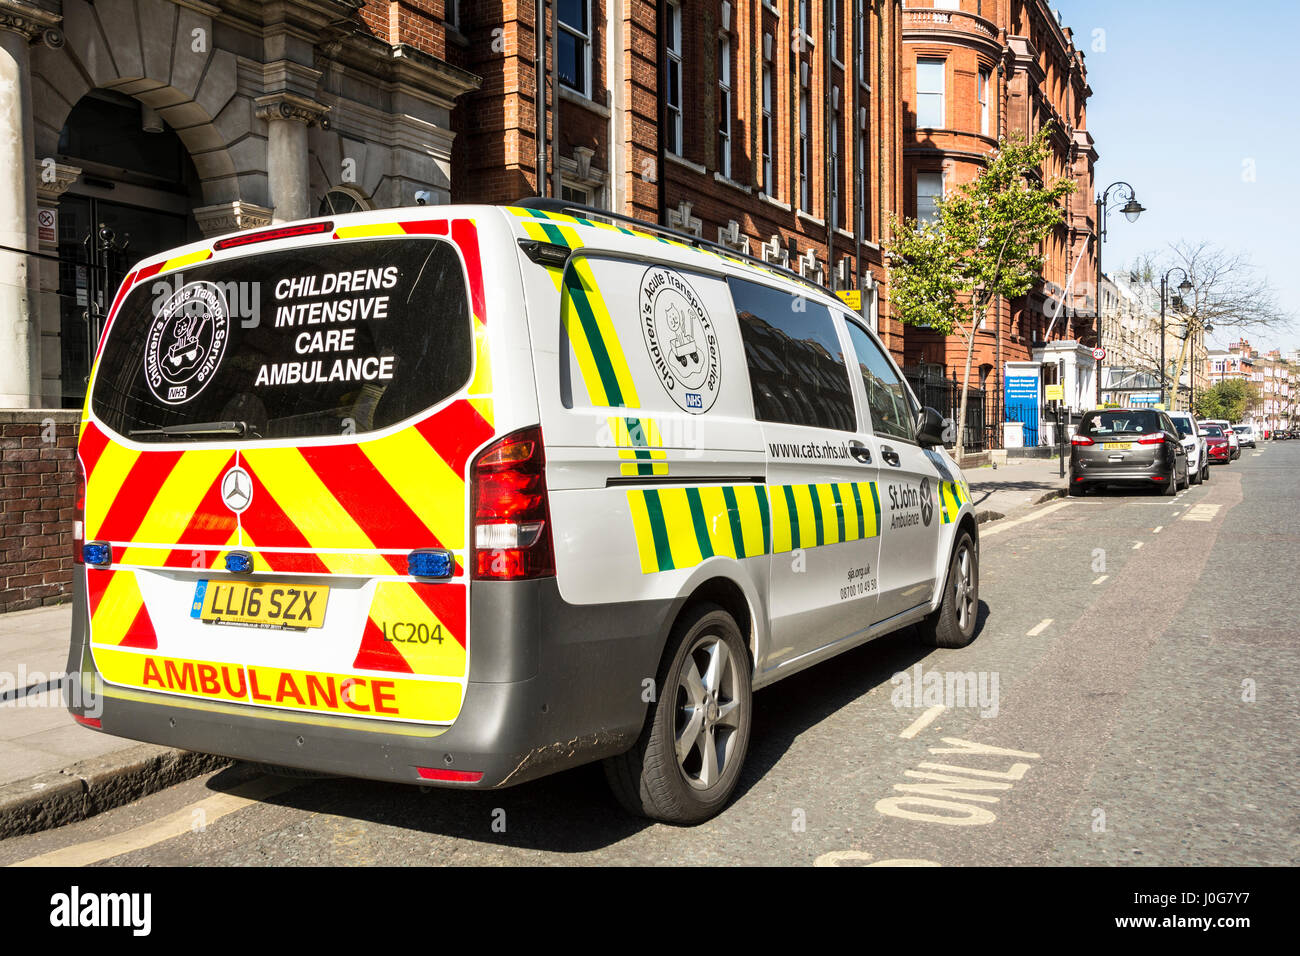 A childrens intensive care ambulance parked outside Great Ormond Street hospital, London, WC1, England, UK - Stock Image